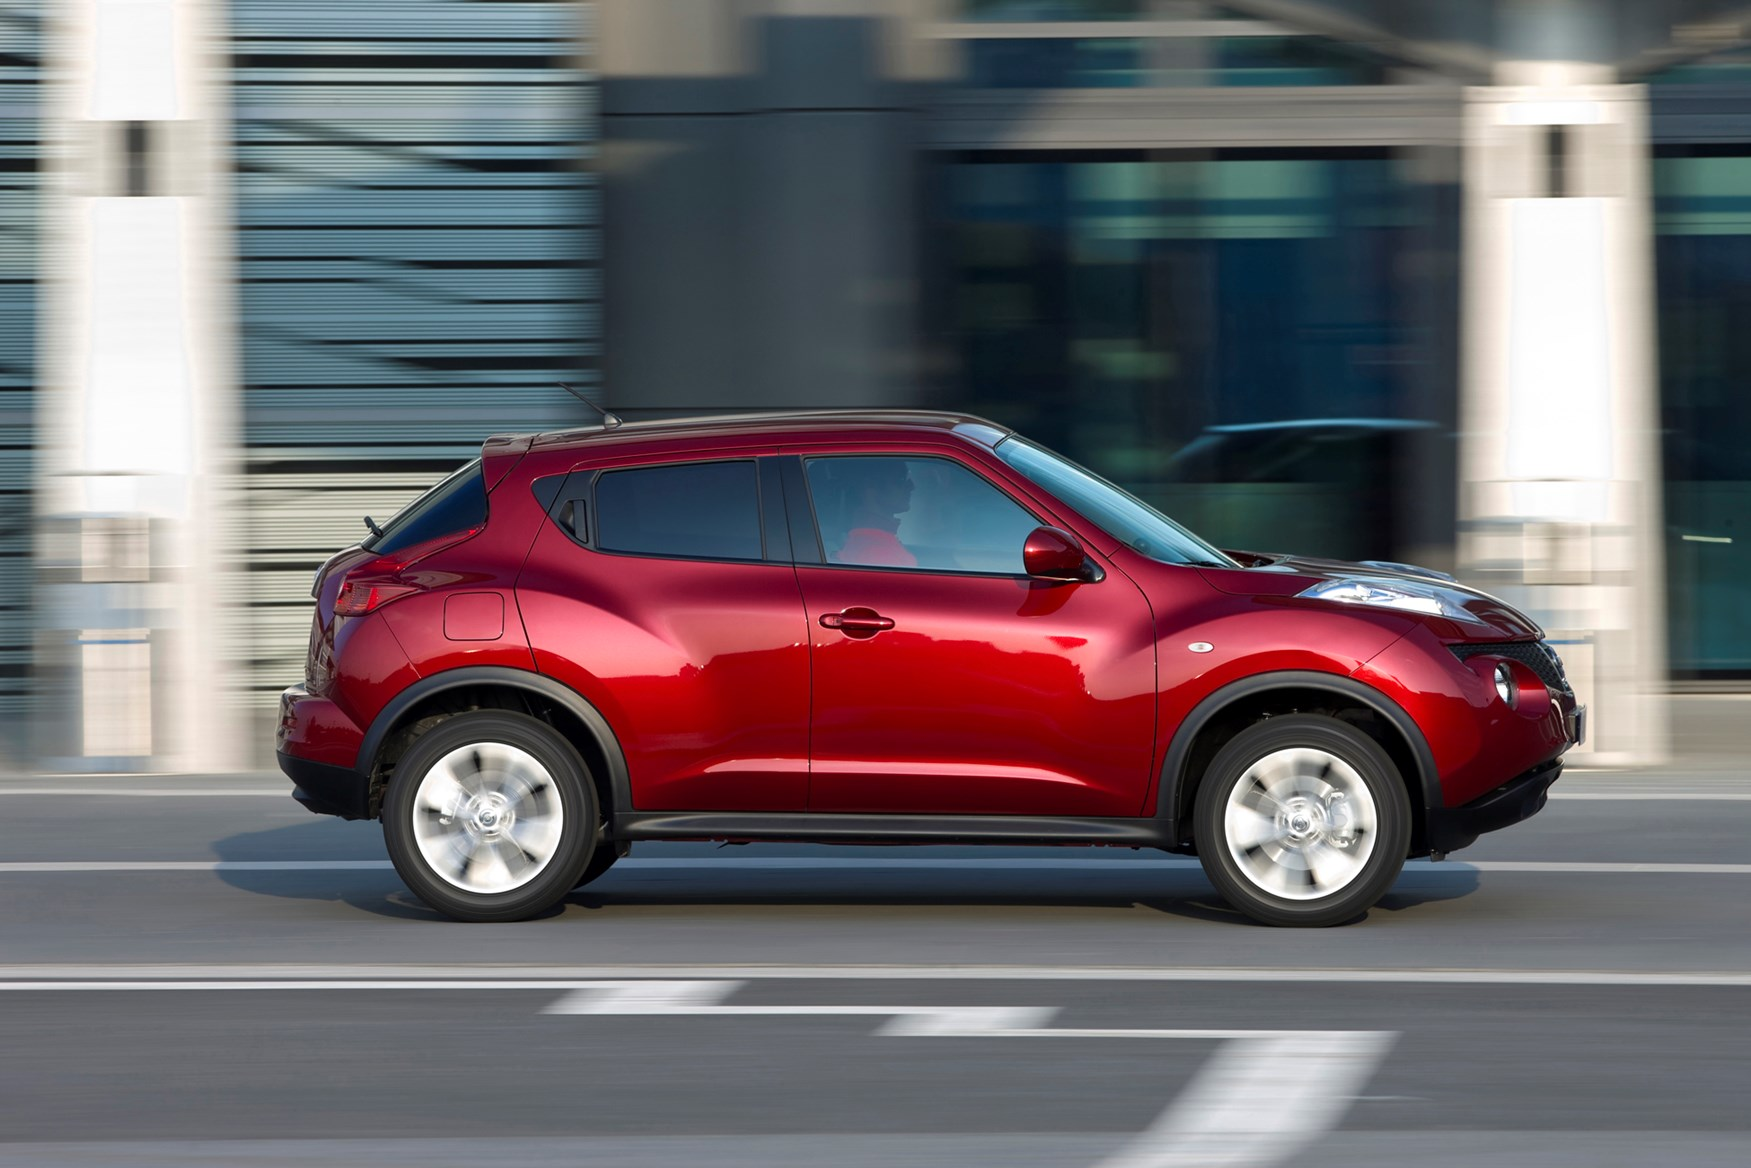 nissan juke suv review summary parkers. Black Bedroom Furniture Sets. Home Design Ideas